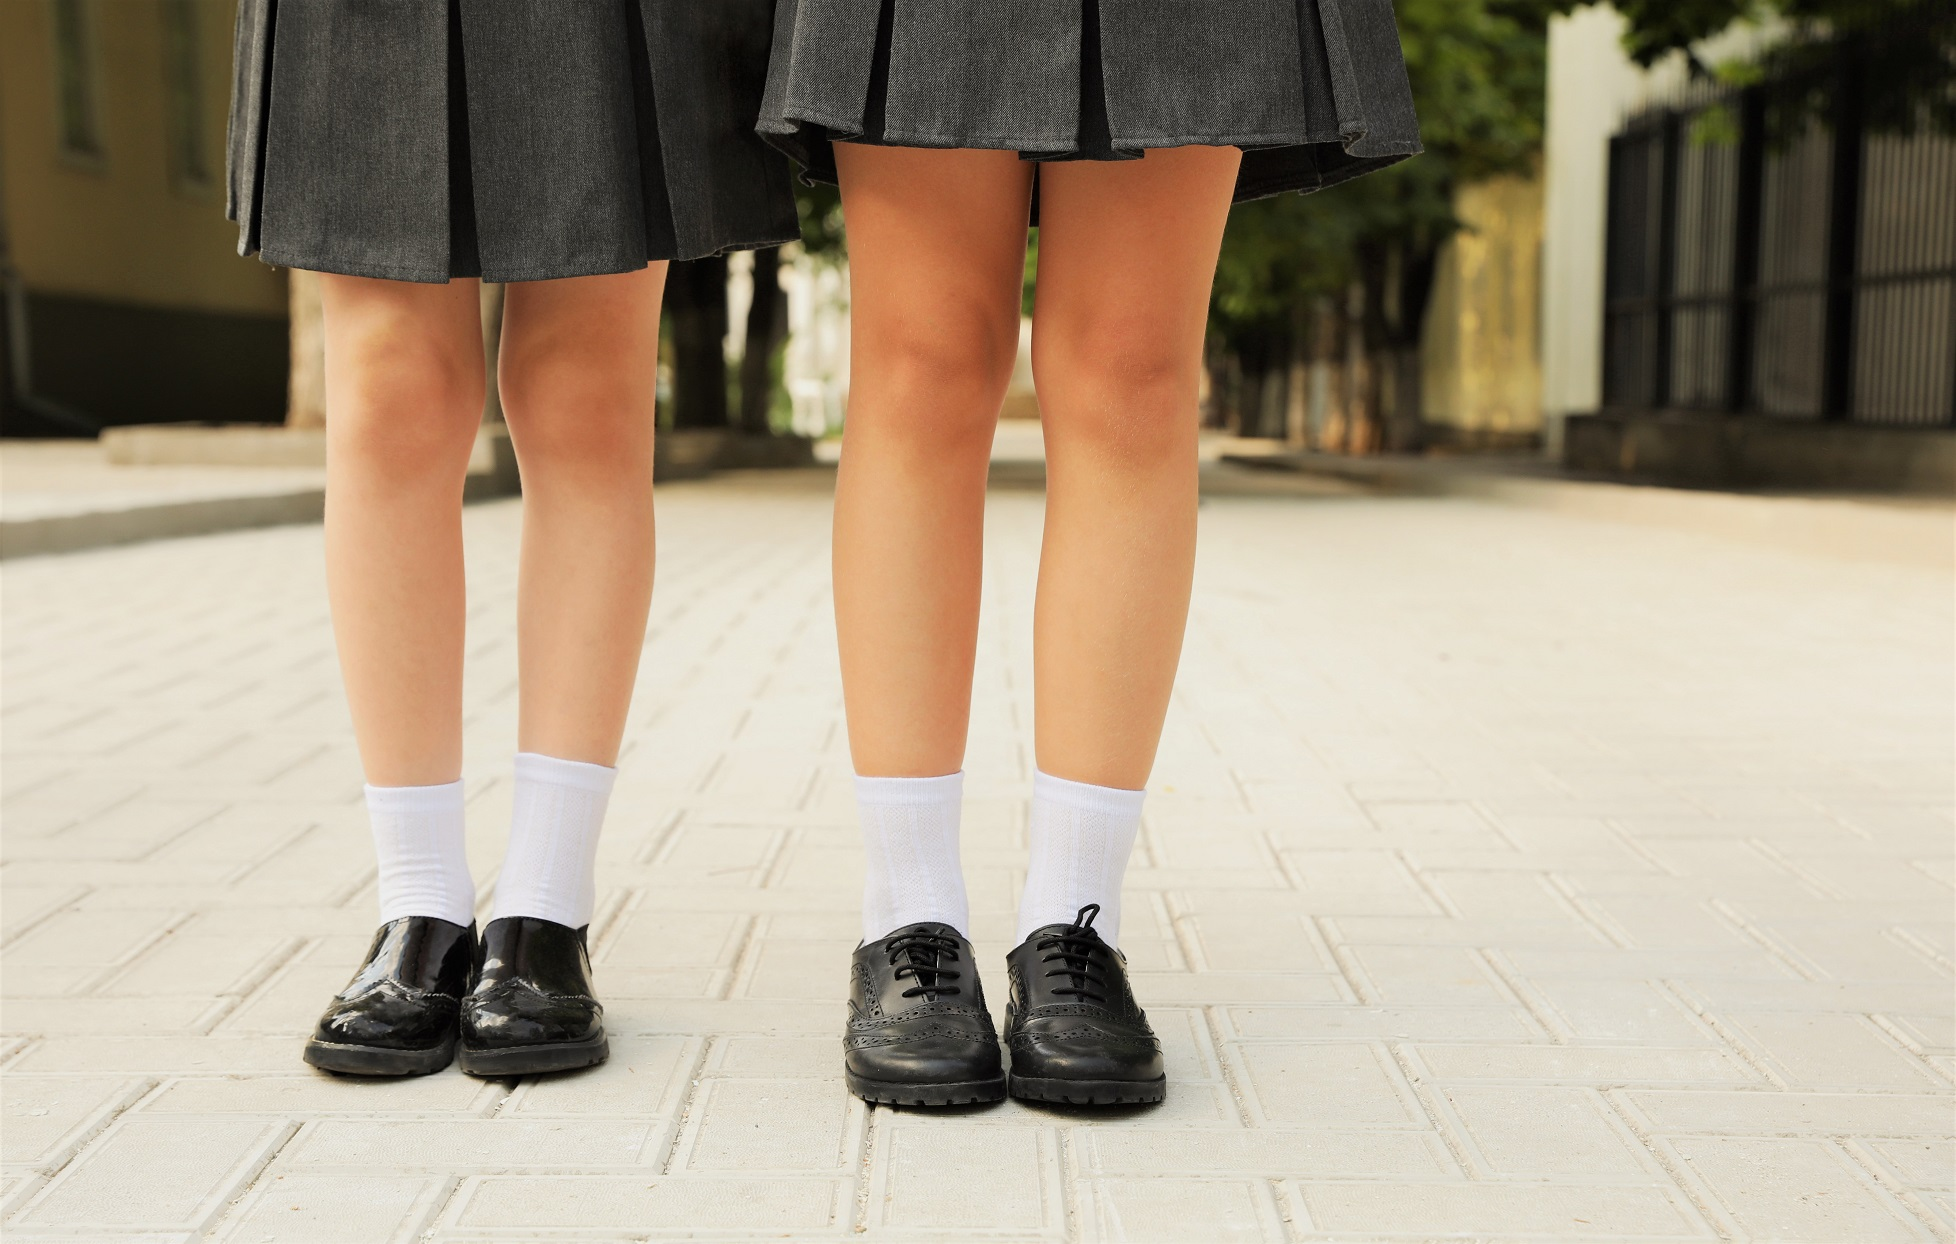 School Girls Uniform Skirt Legs Socks Black Shoes